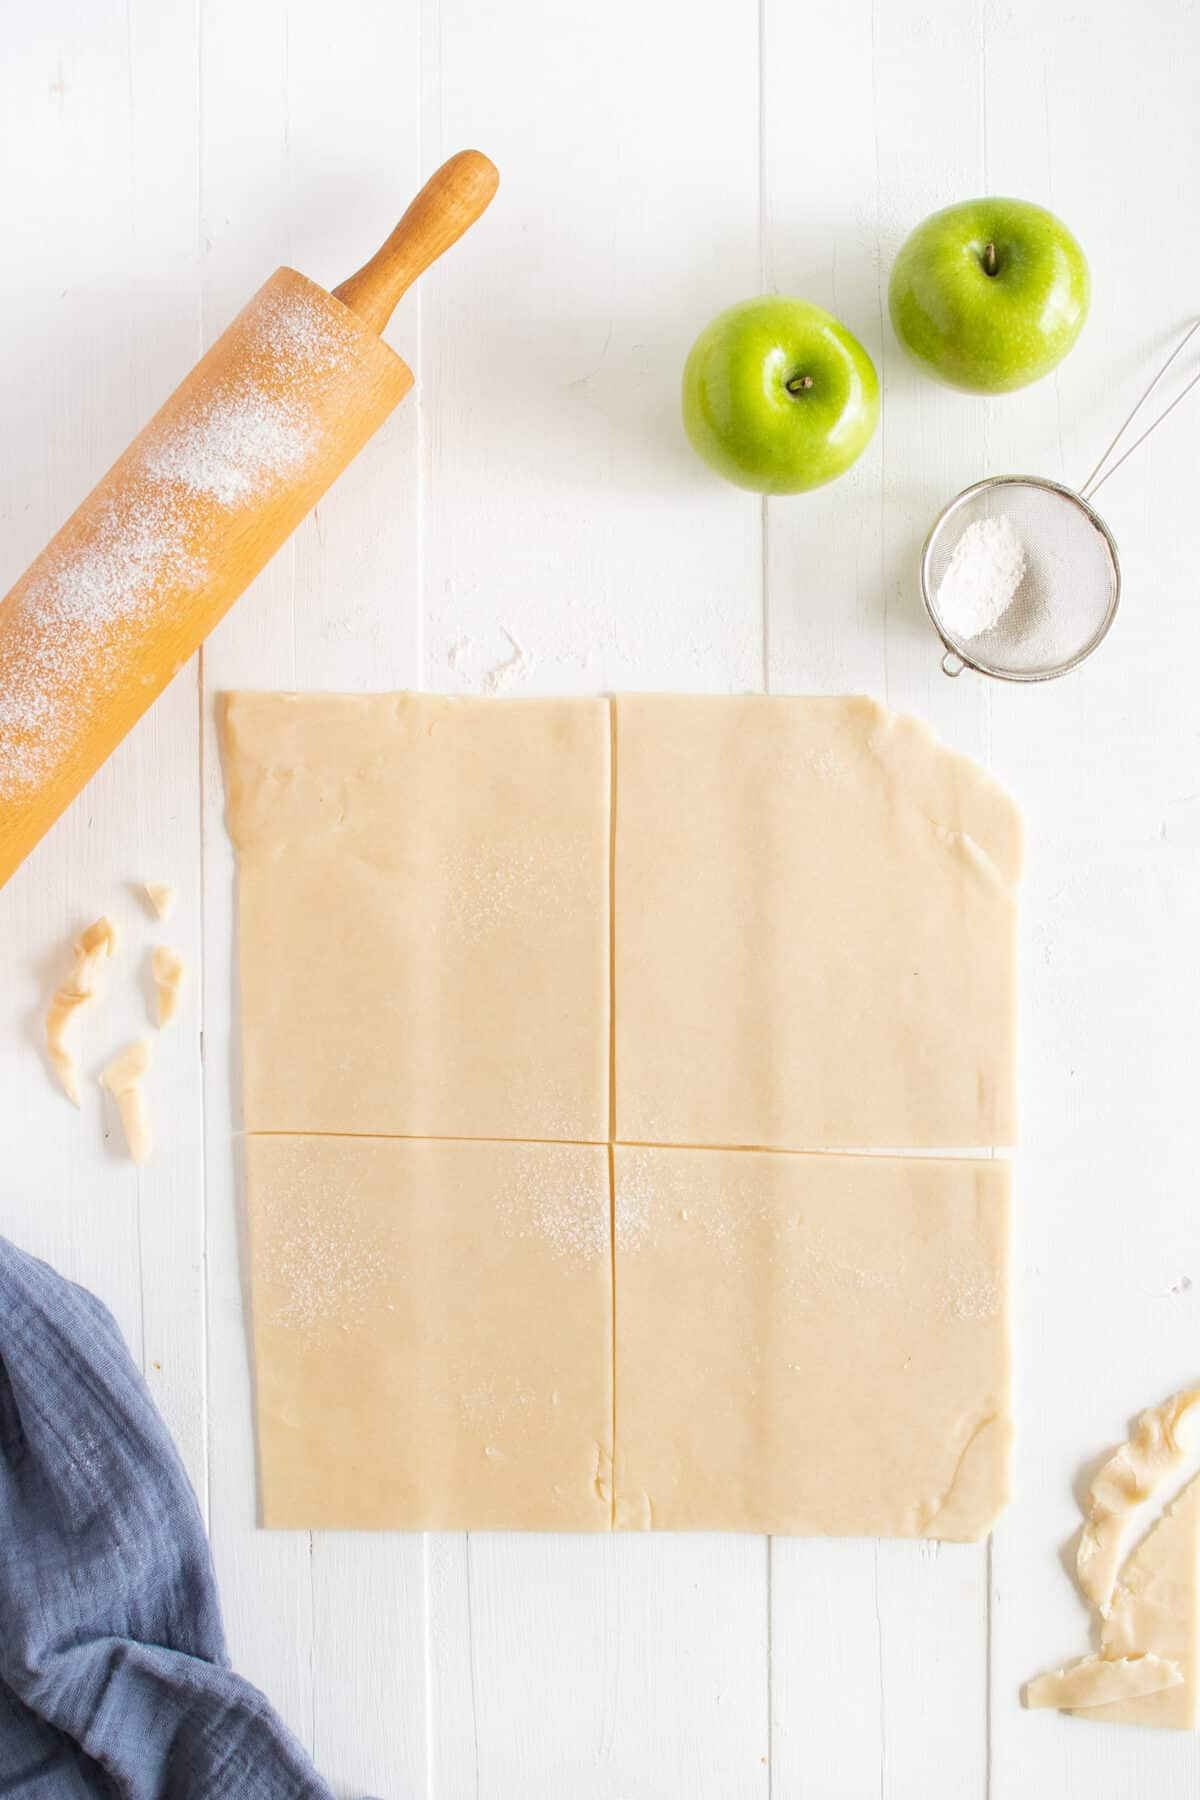 cutting the pastry into four squares